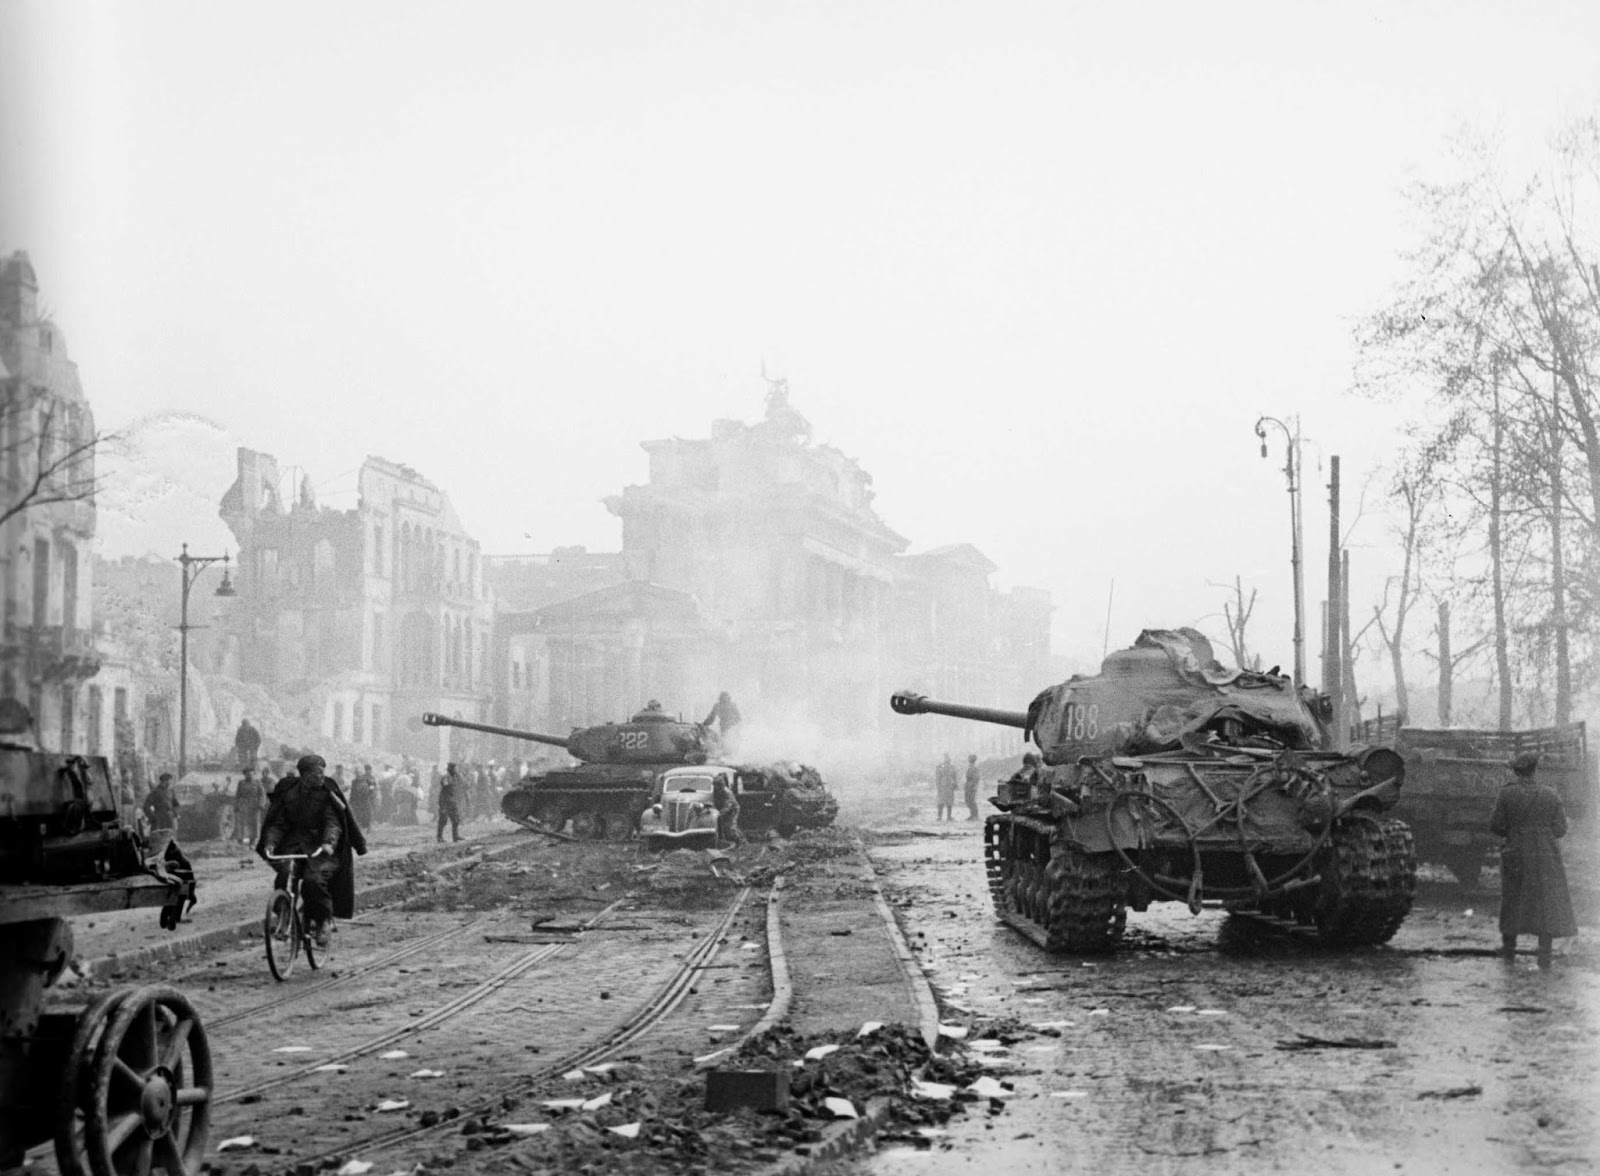 Tanks in the streets of Berlin.